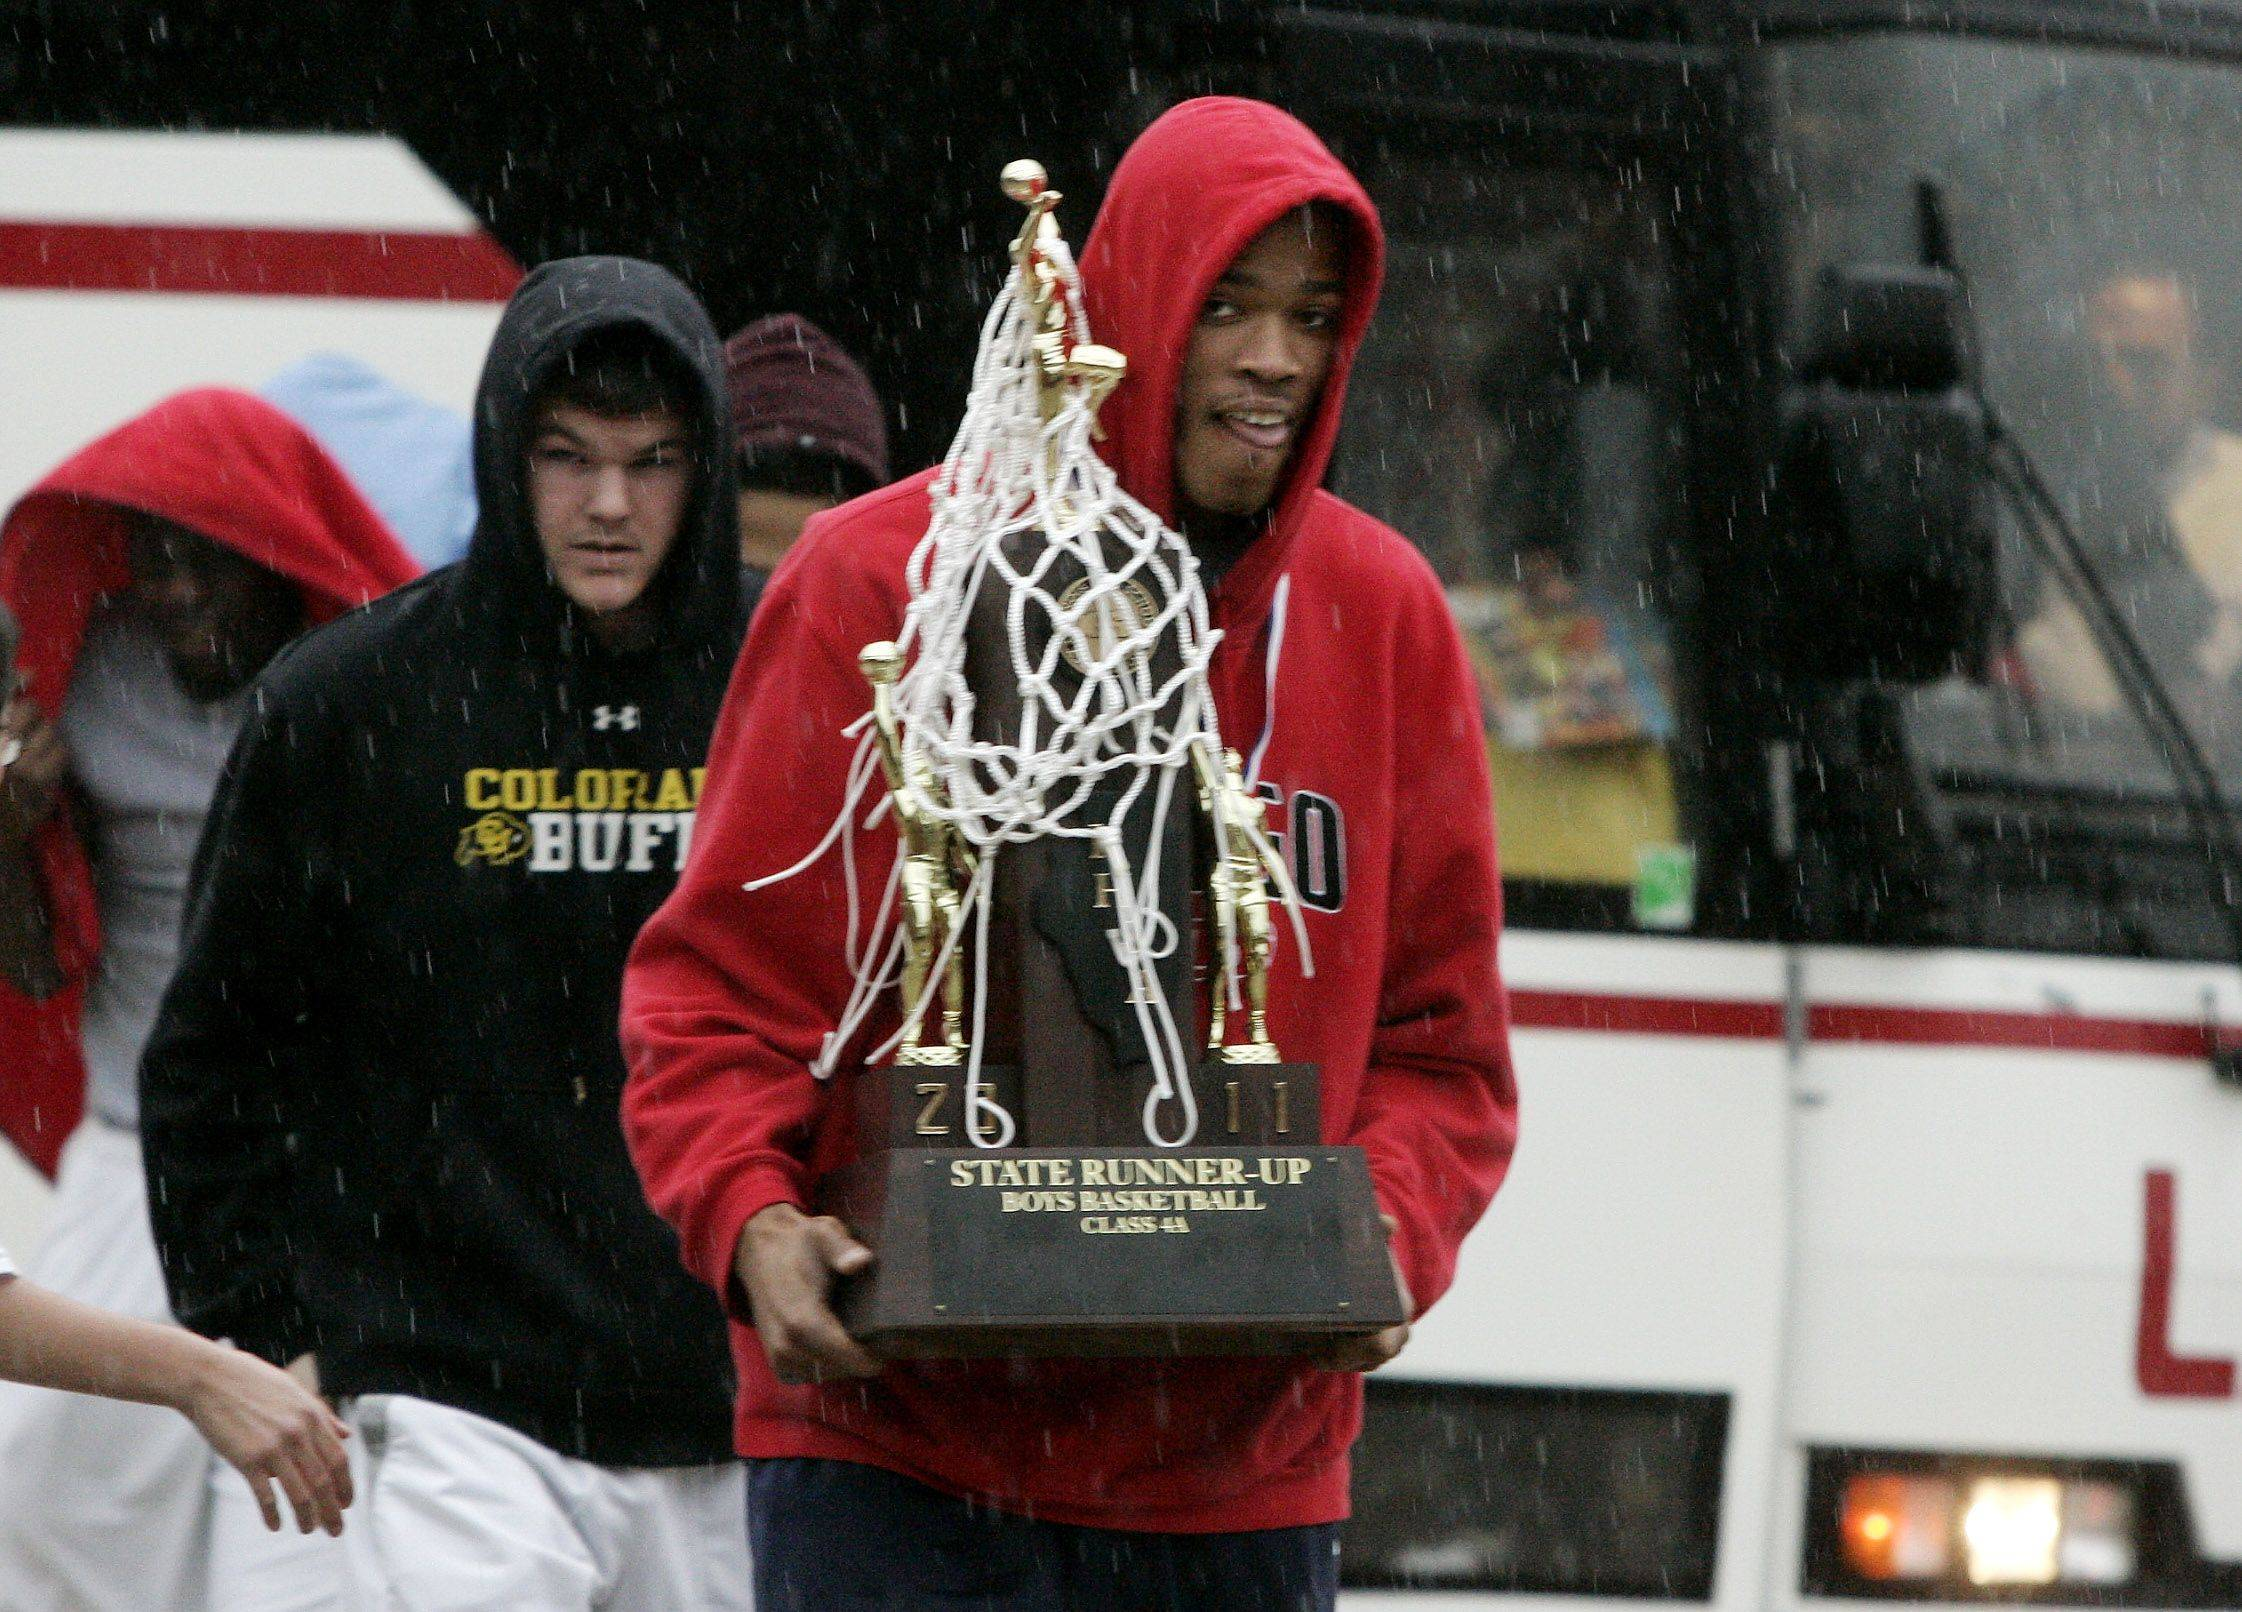 Jeremiah Jackson carries the trophy off the bus and into the rain as the Warren Township High School boys basketball team returns to the high school in Gurnee Sunday after finishing second in the state tournament.